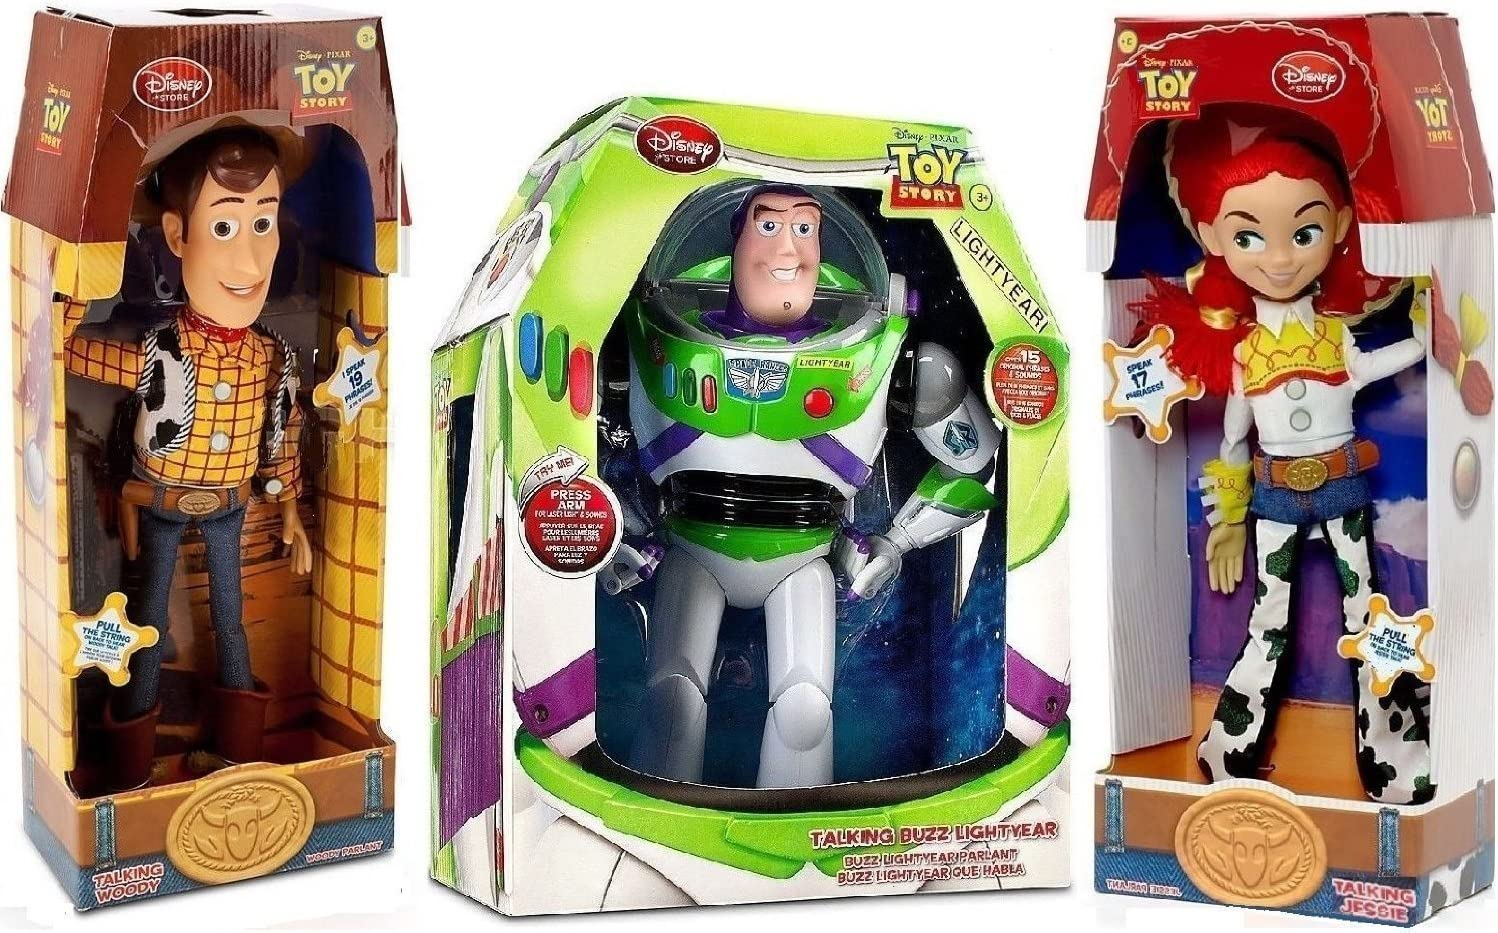 Toy Story Action Figures//Playsets//Toys//Buzz Lightyear//Woody Brand New /& Boxed